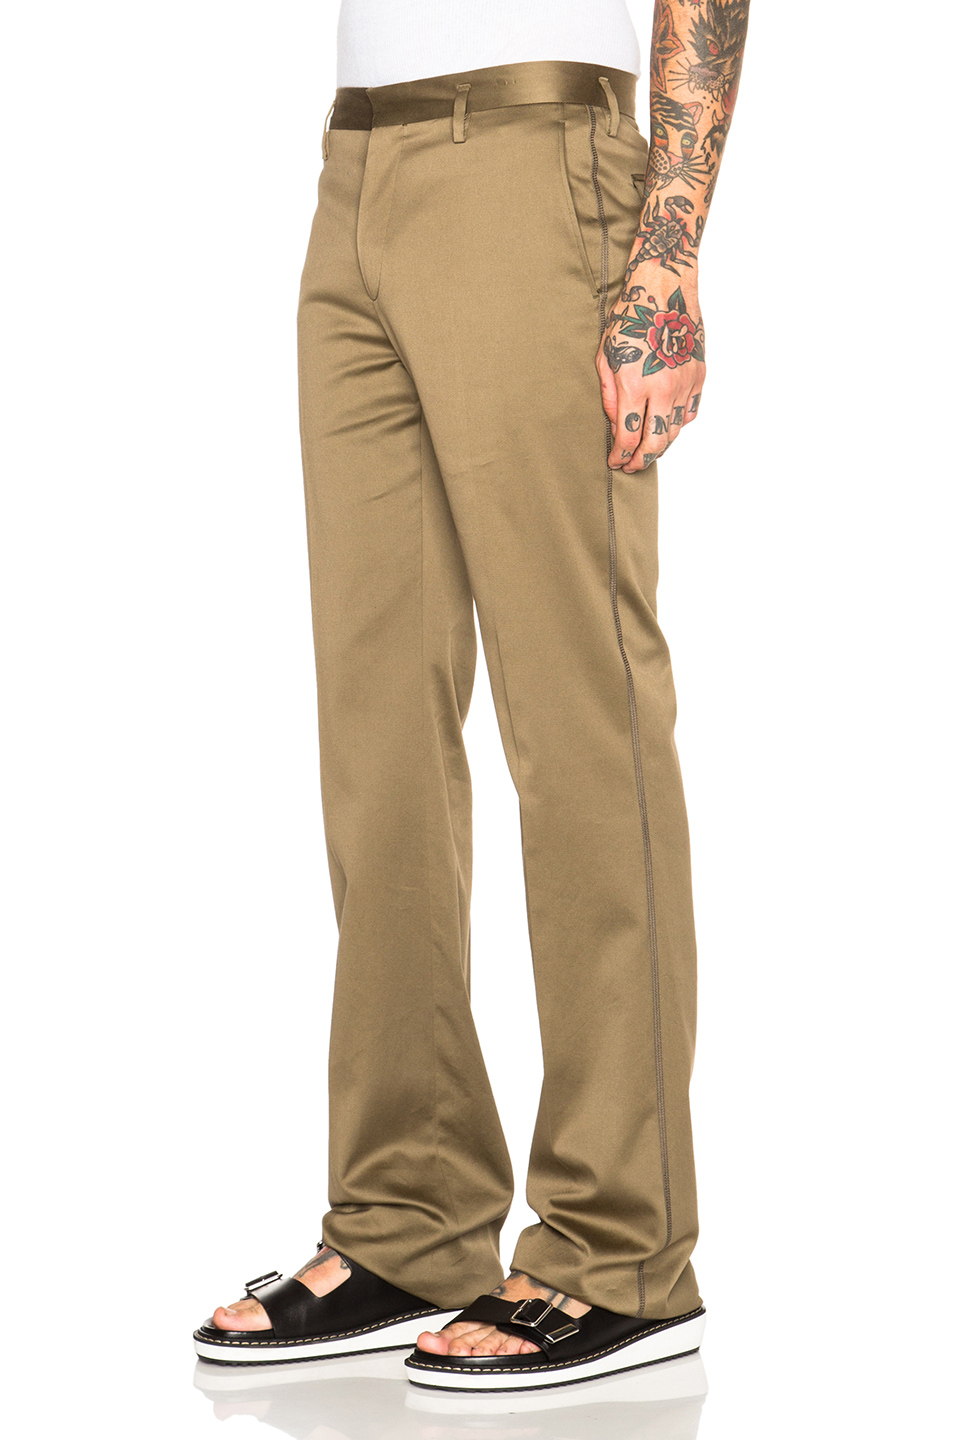 Marc jacobs Broken Twill Cotton Pants in Natural | Lyst